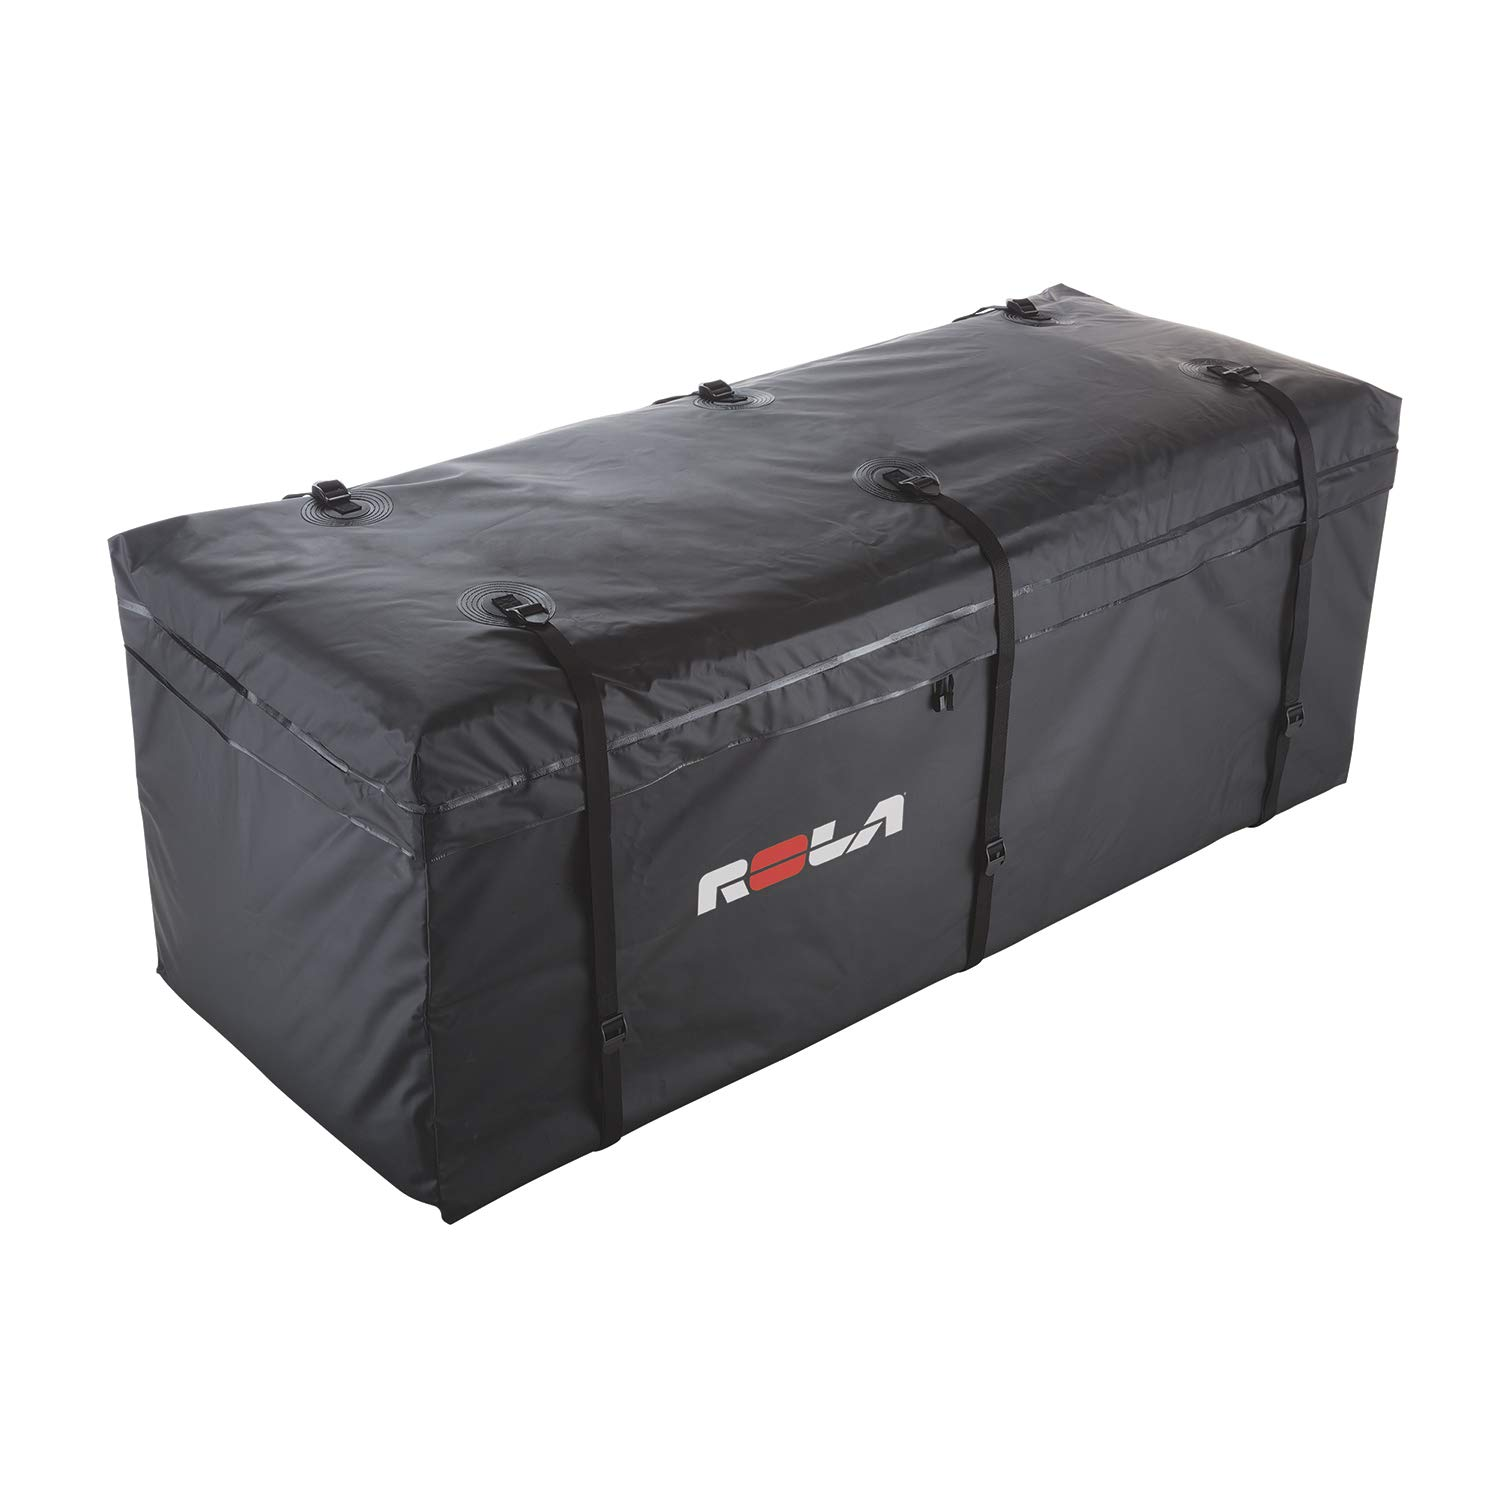 ROLA 59119 Rainproof Cargo Carrier Bag 59' x 24' x 24' (20 Cu Ft)